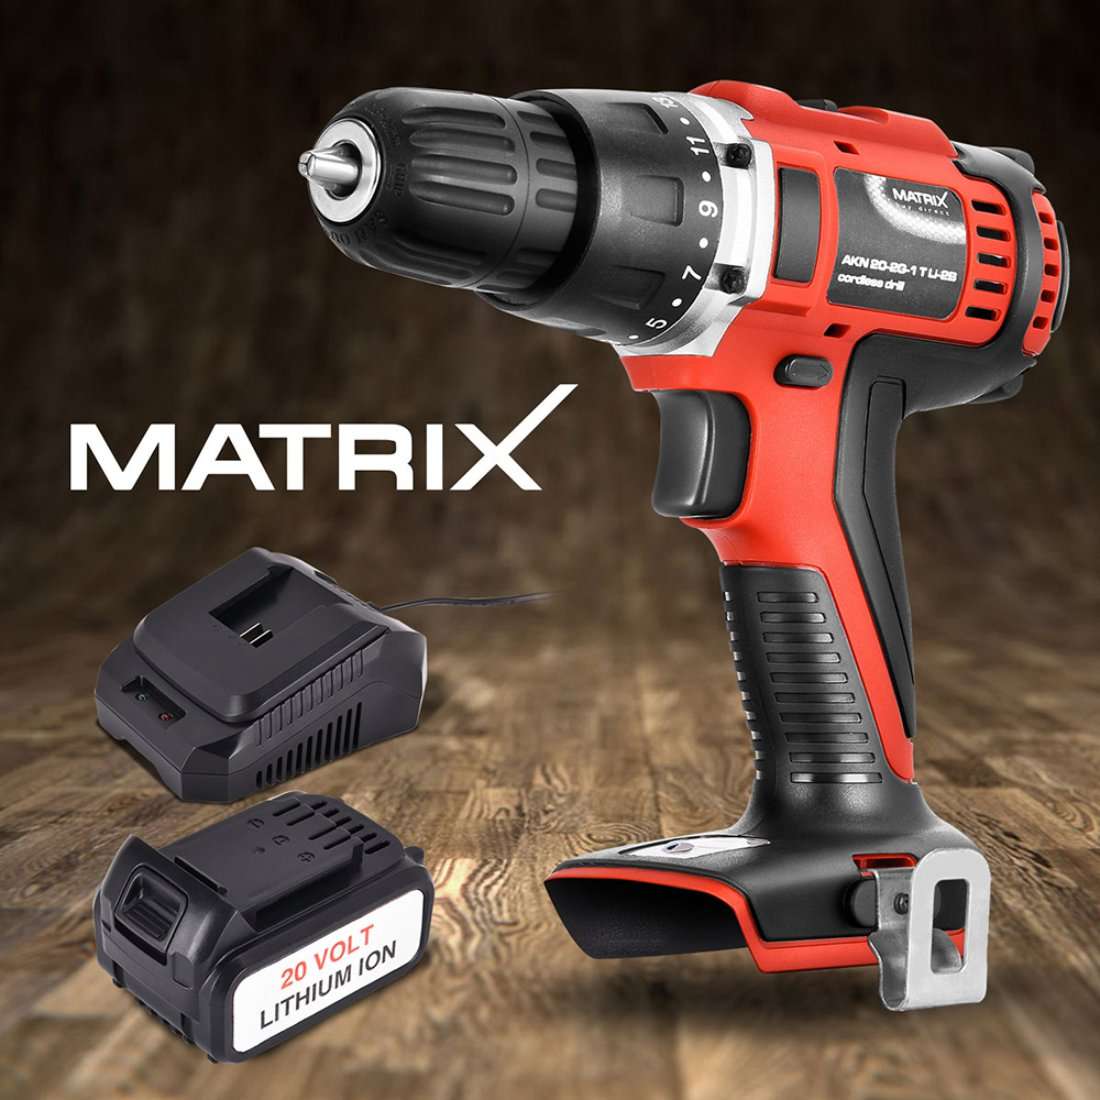 NEW Matrix 20V Cordless Drill 4.0ah Li-Ion Battery Charger Power Tool